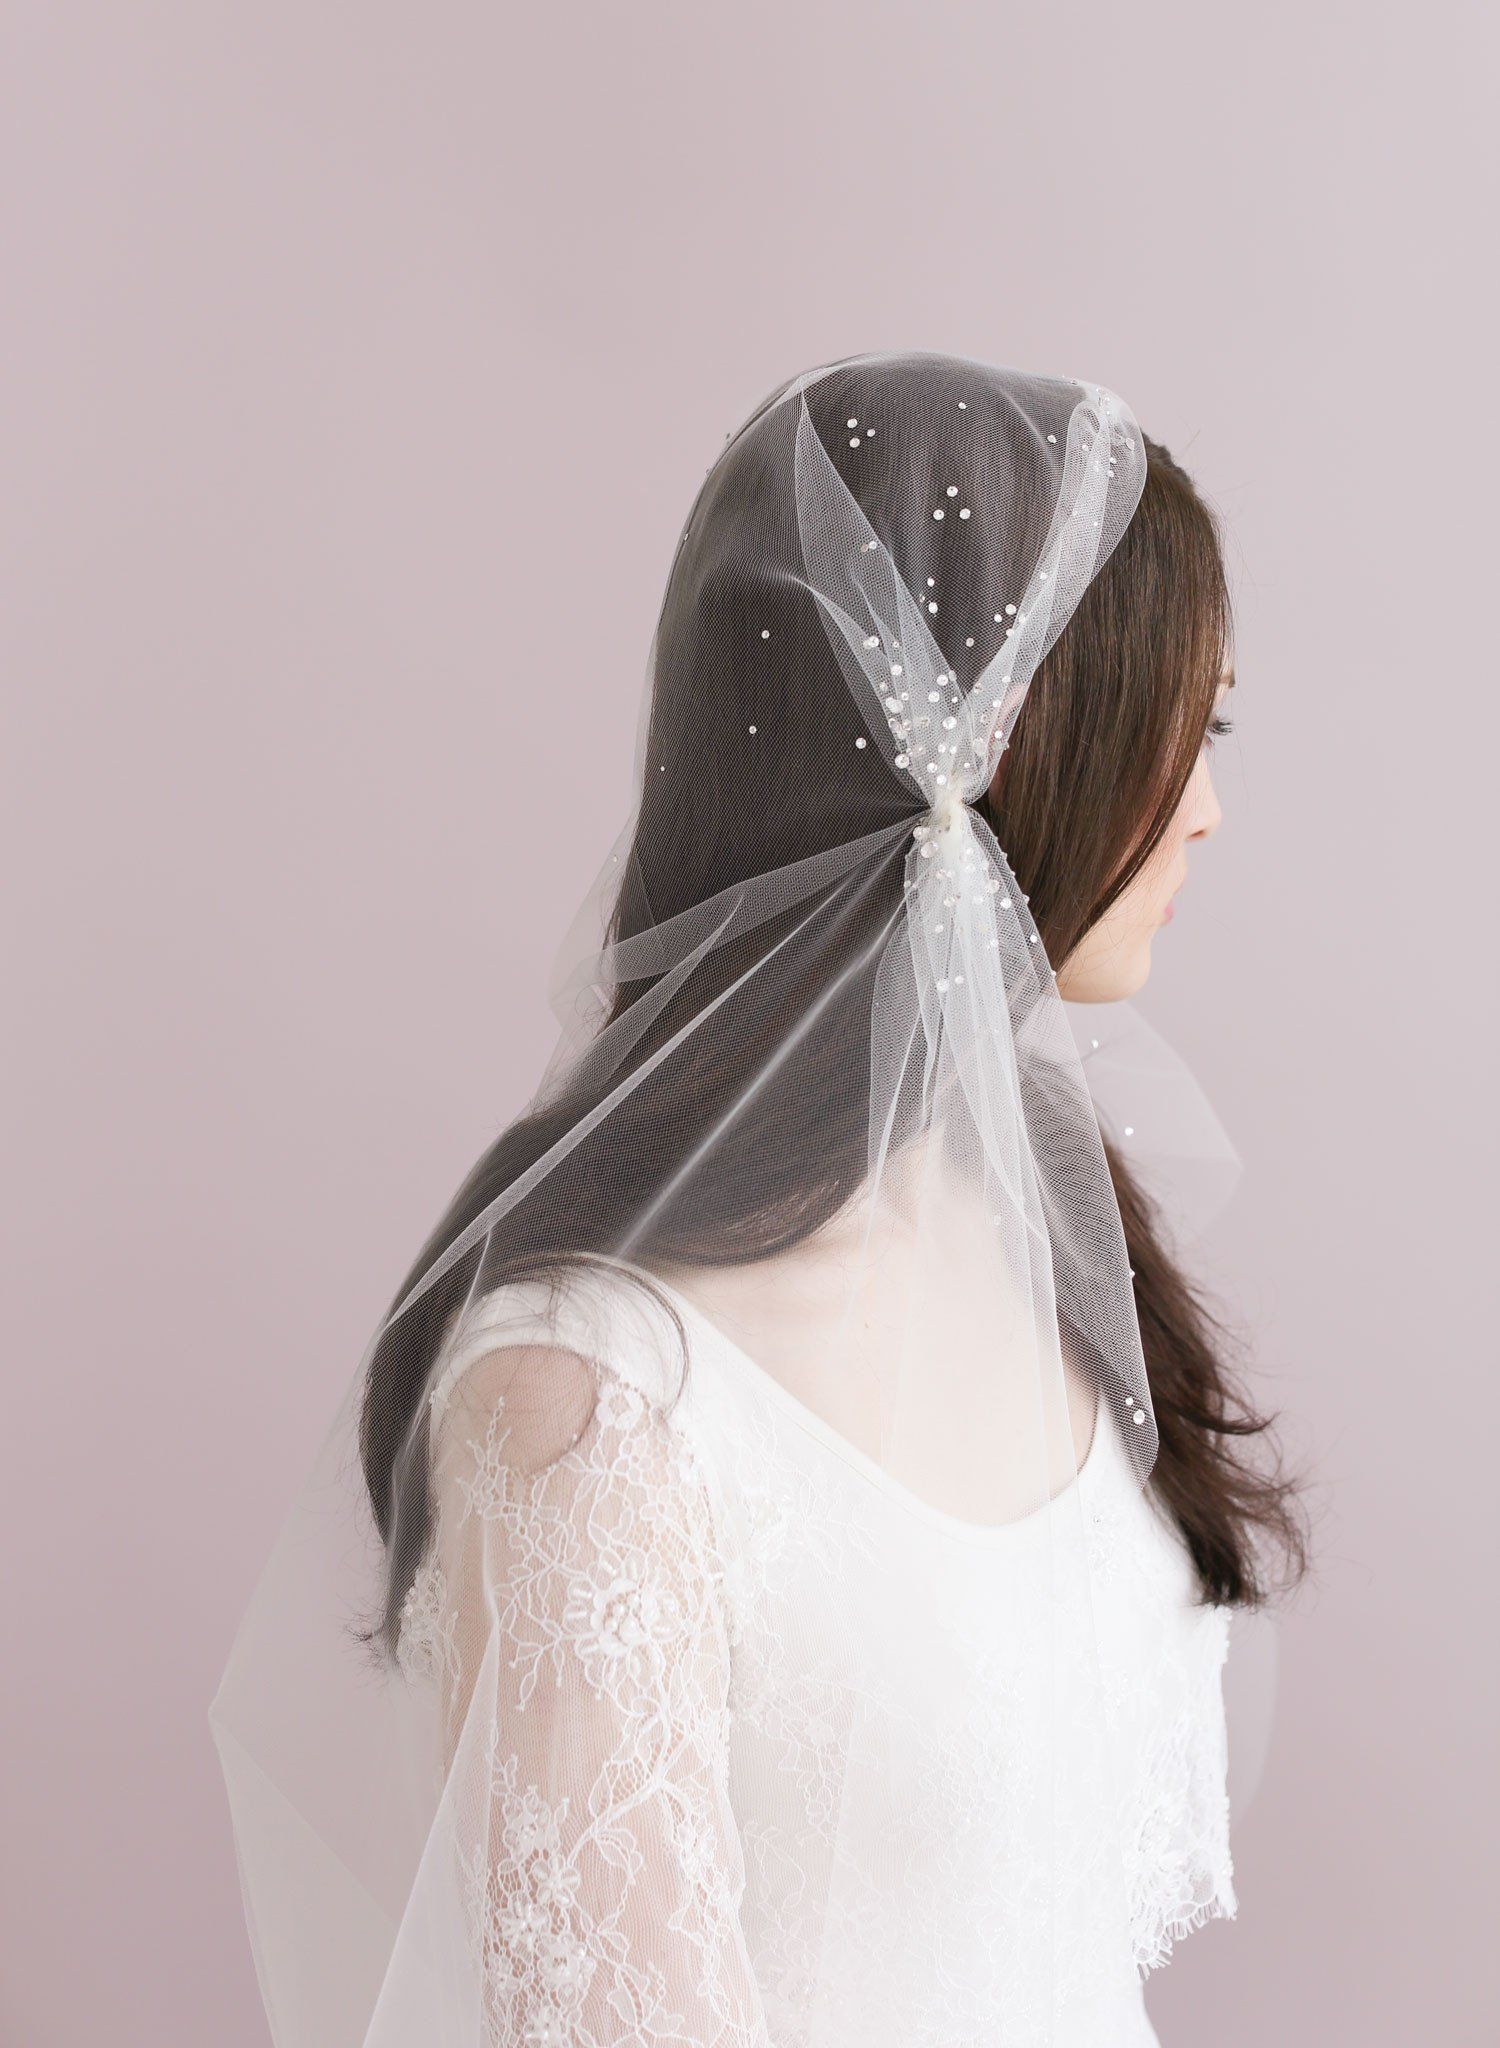 Juliet wedding dress  Rhinestone speckled juliet veil  Style    Pinterest  Veil and